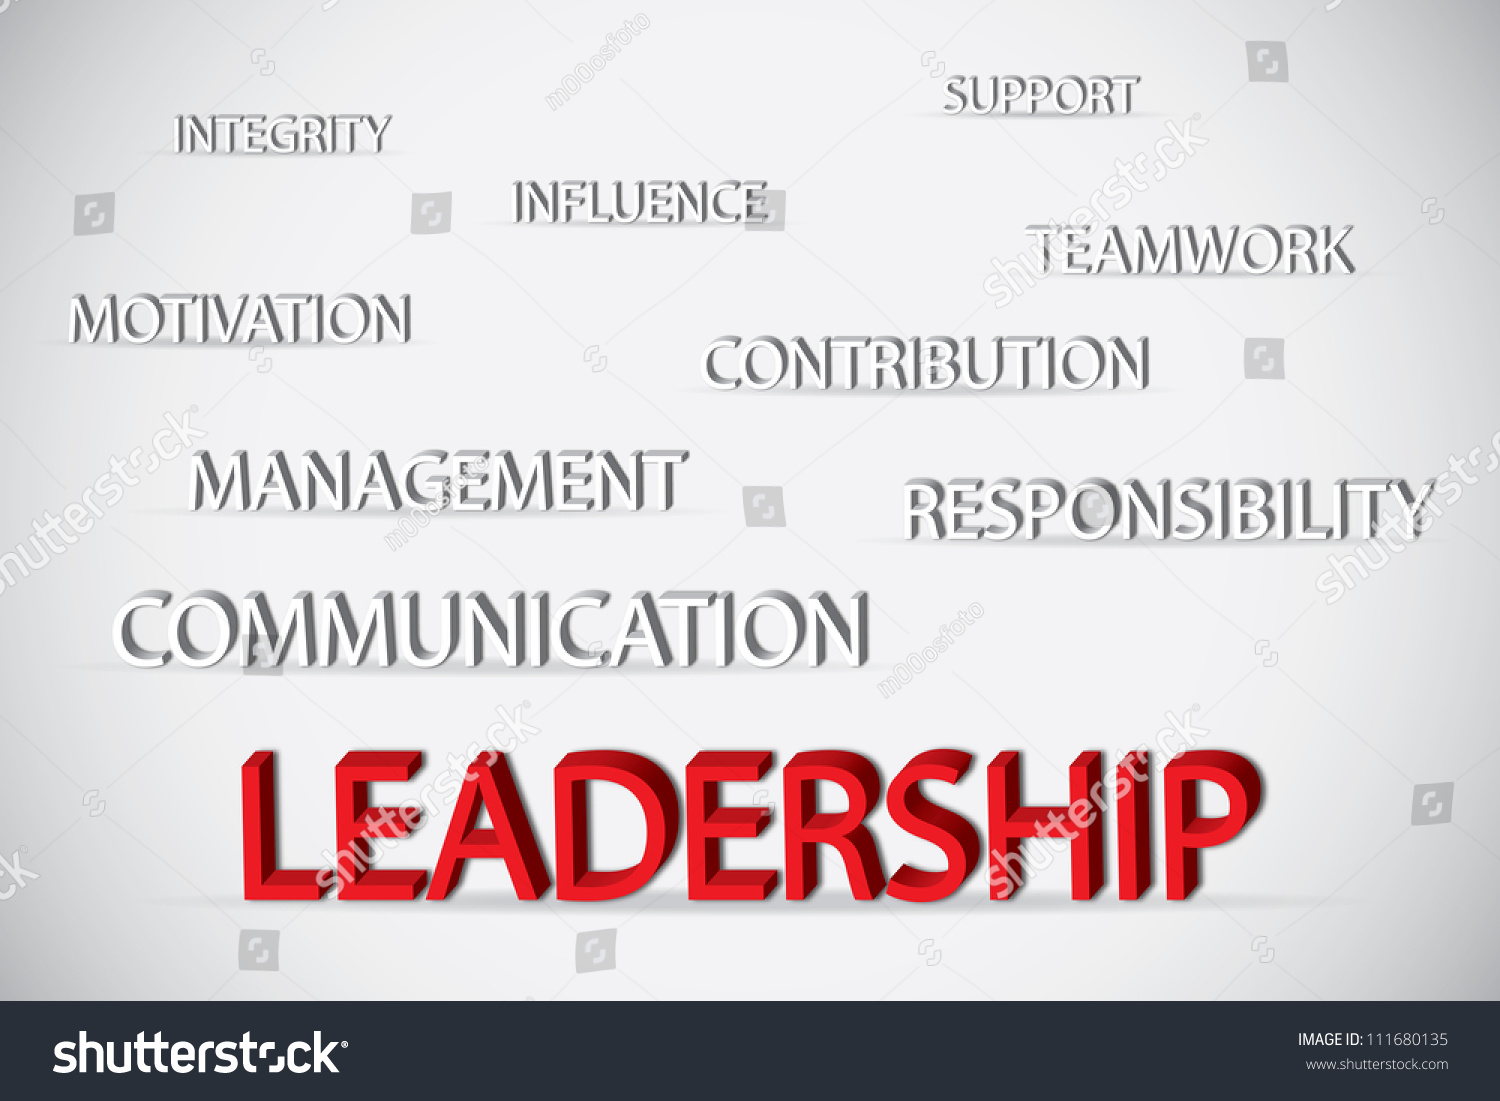 concept of leadership consists of support integrity influence influence teamwork motivation management preview save to a lightbox